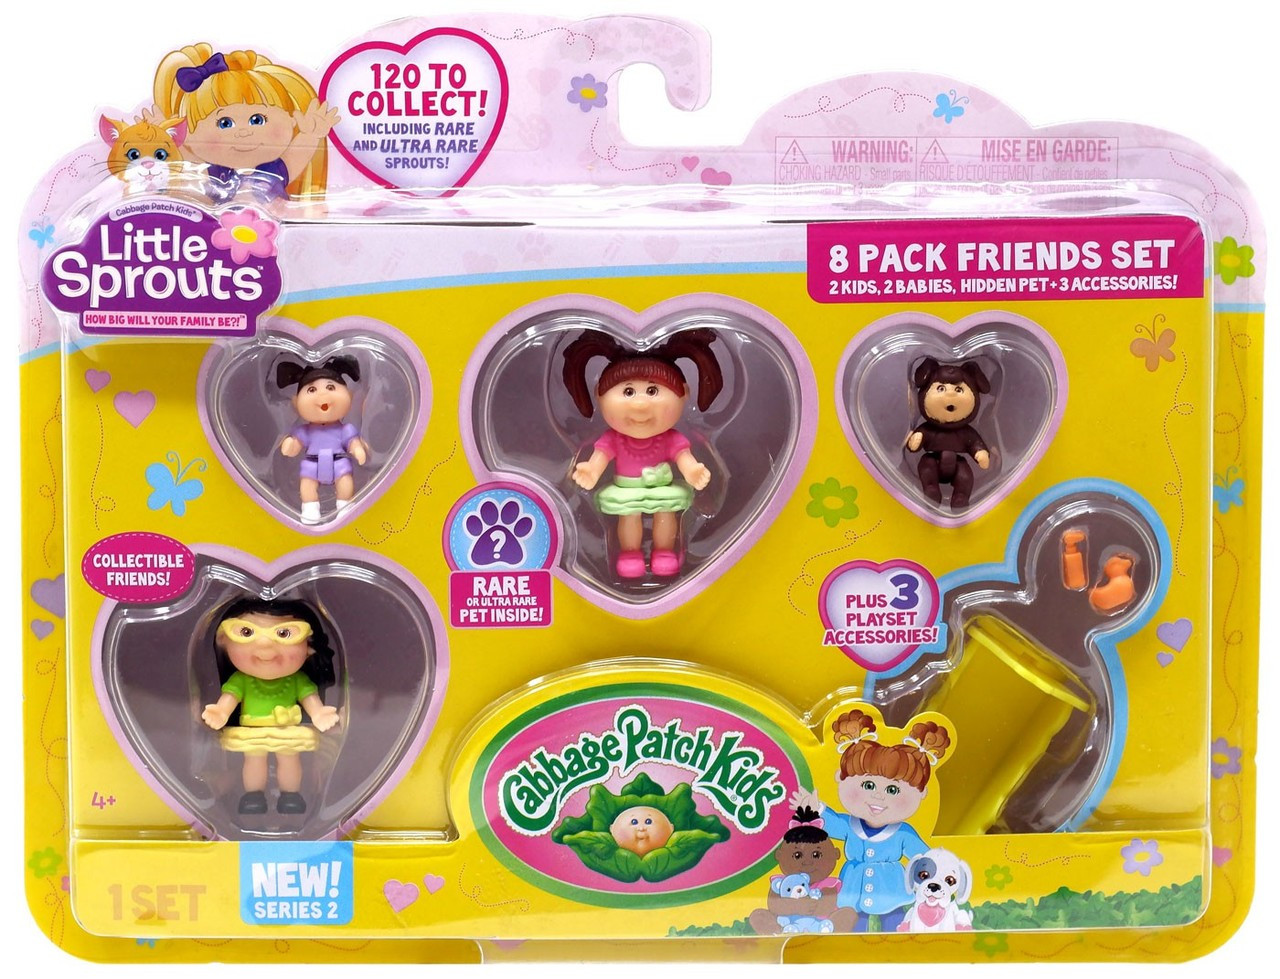 Cabbage Patch Kids Little Sprouts Series 2 Gwen Elizabeth Mini Figure 4-Pack